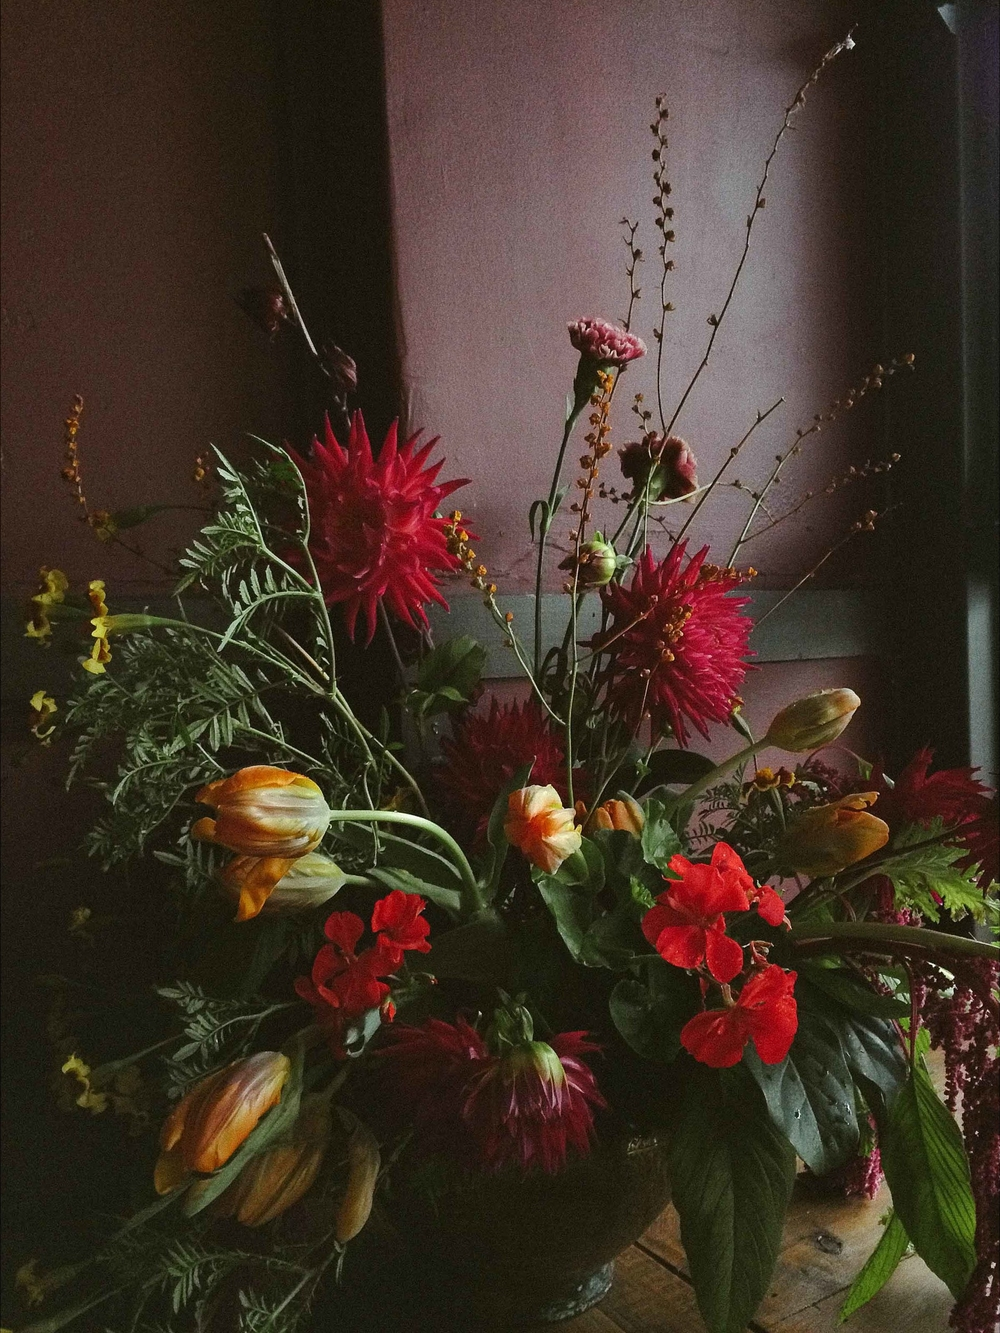 Flowers by Primula Floral Styling, photo by Eliza Rogers